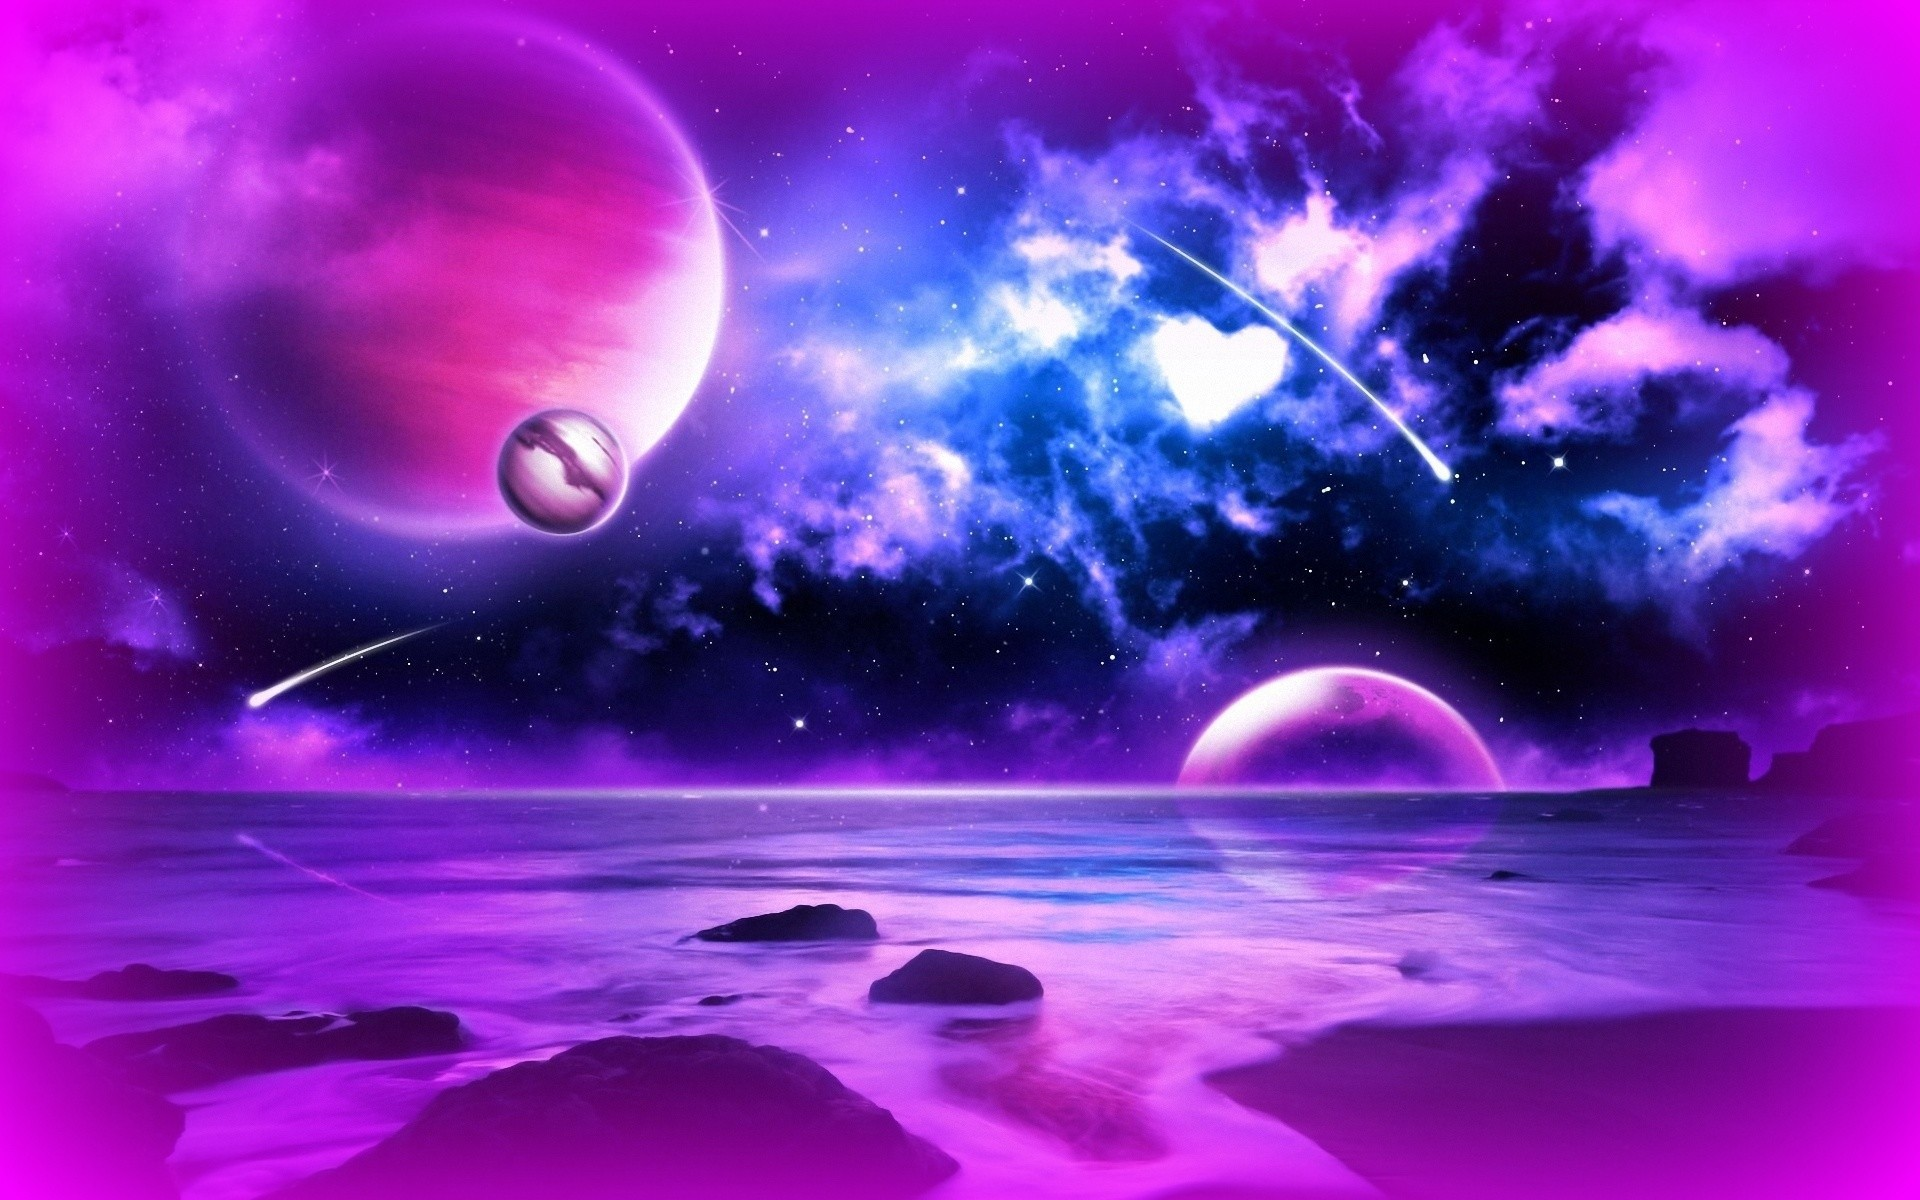 color planet aesthetic wallpapers - HD 1920×1200